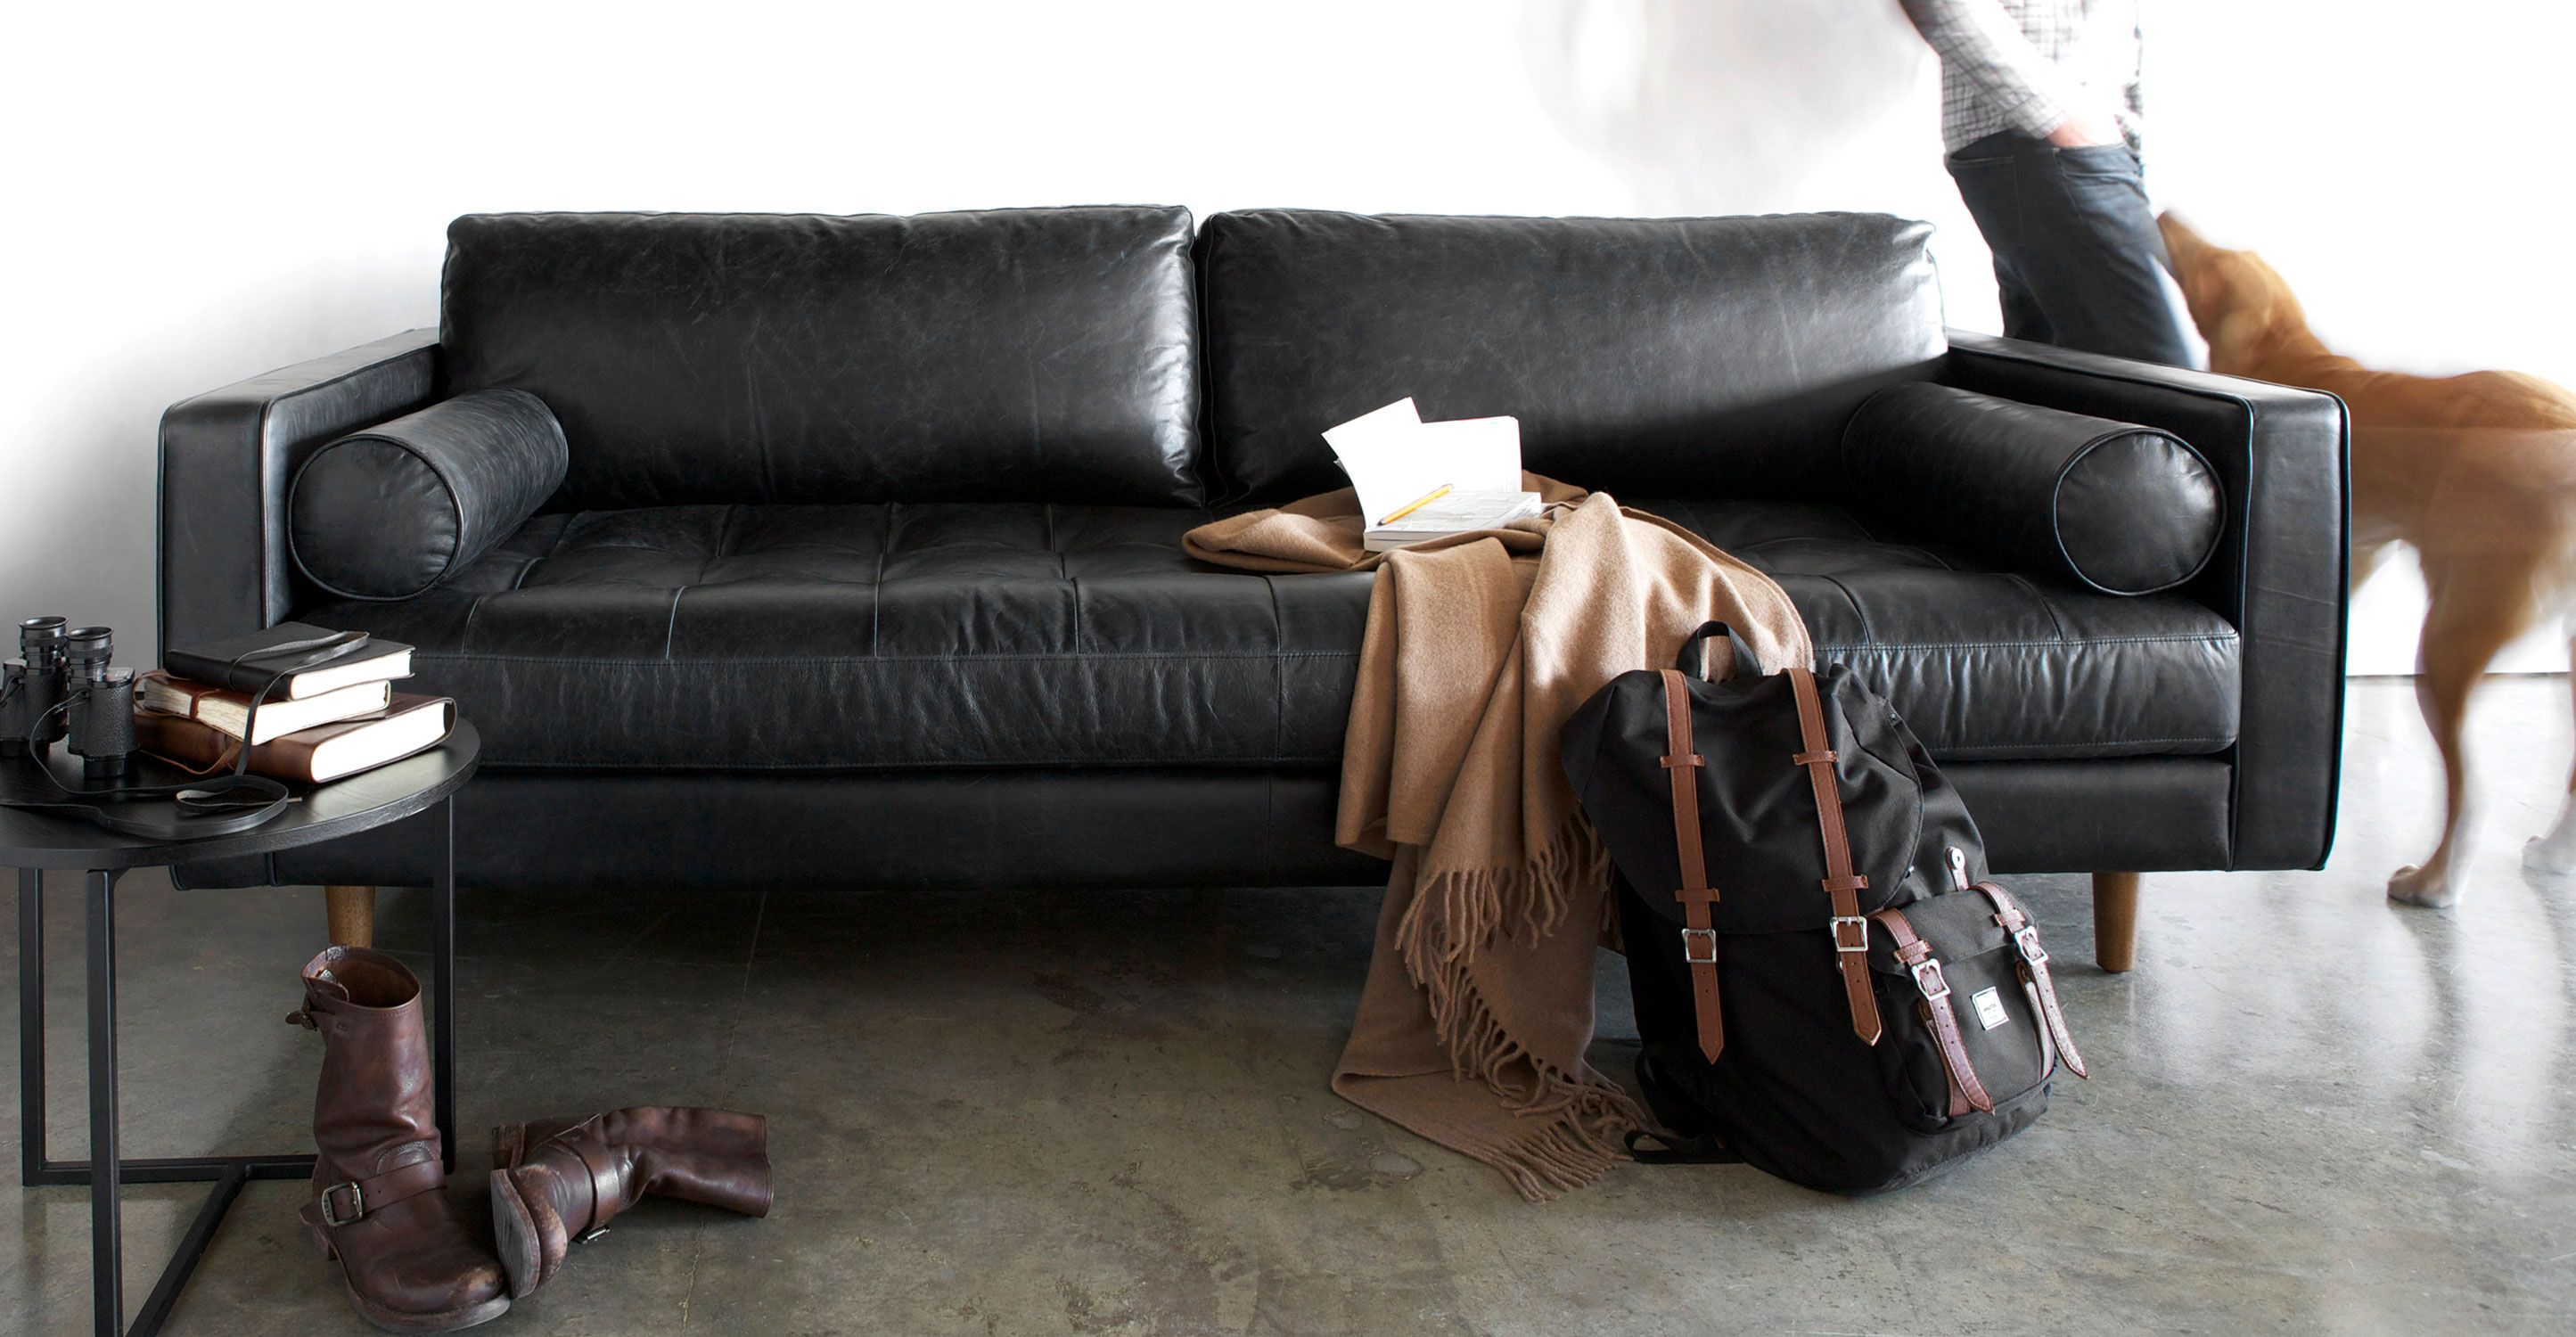 century furniture sofa quality ikea with removable cover sven oxford black living pinterest